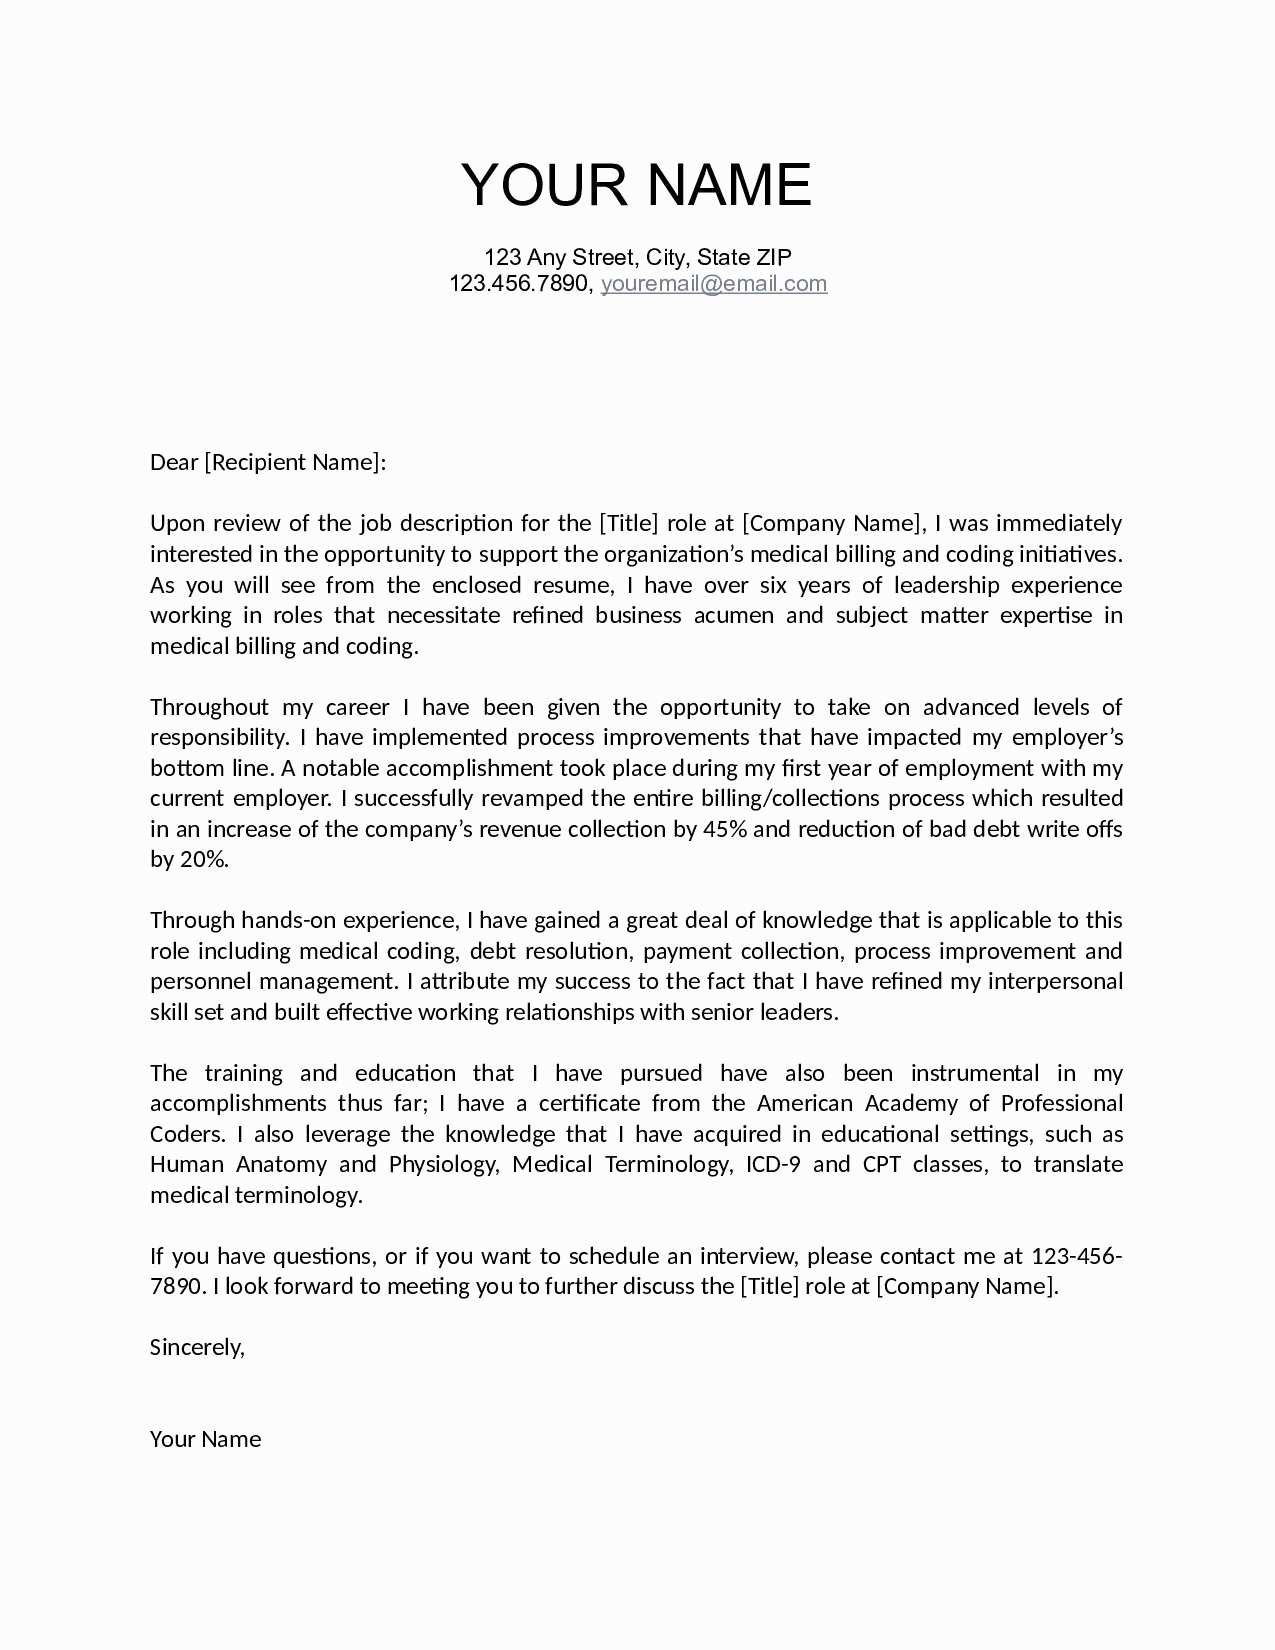 Will Serve Letter Template - Resume Headline Examples for Customer Service Lovely Job Fer Letter